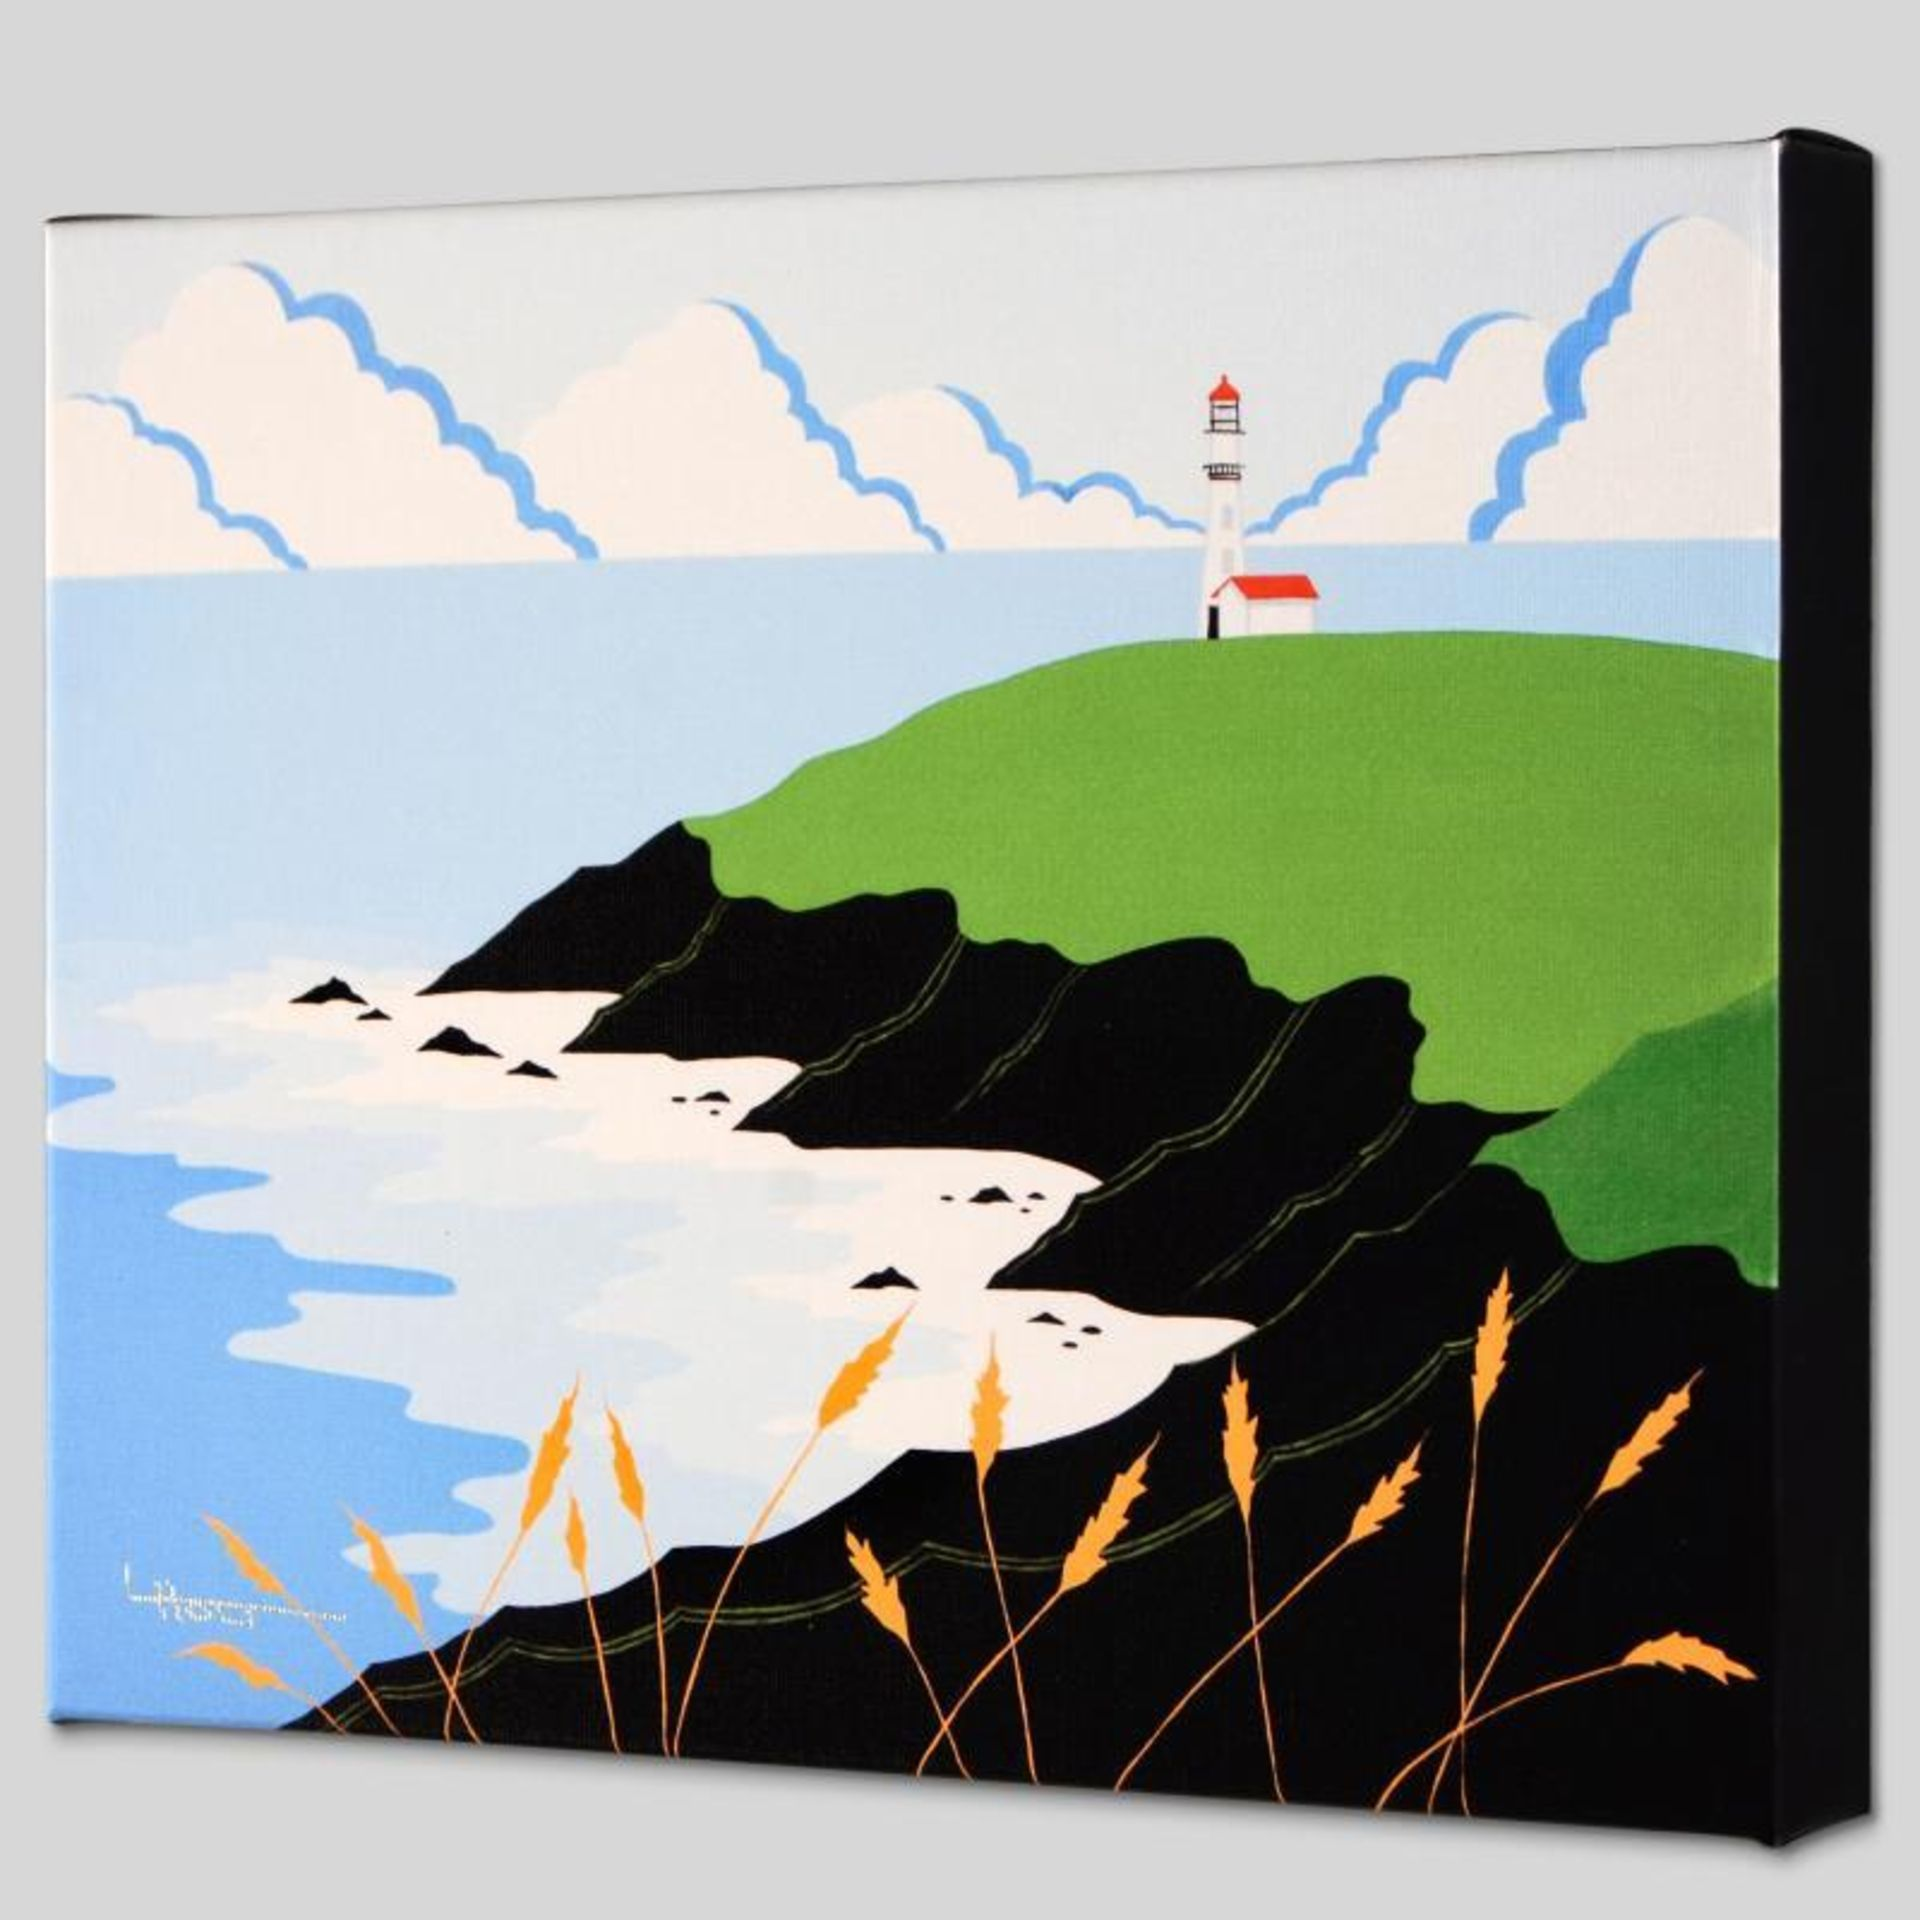 """Fisherman's Lighthouse"" Limited Edition Giclee on Canvas by Larissa Holt, Numbe - Image 2 of 2"